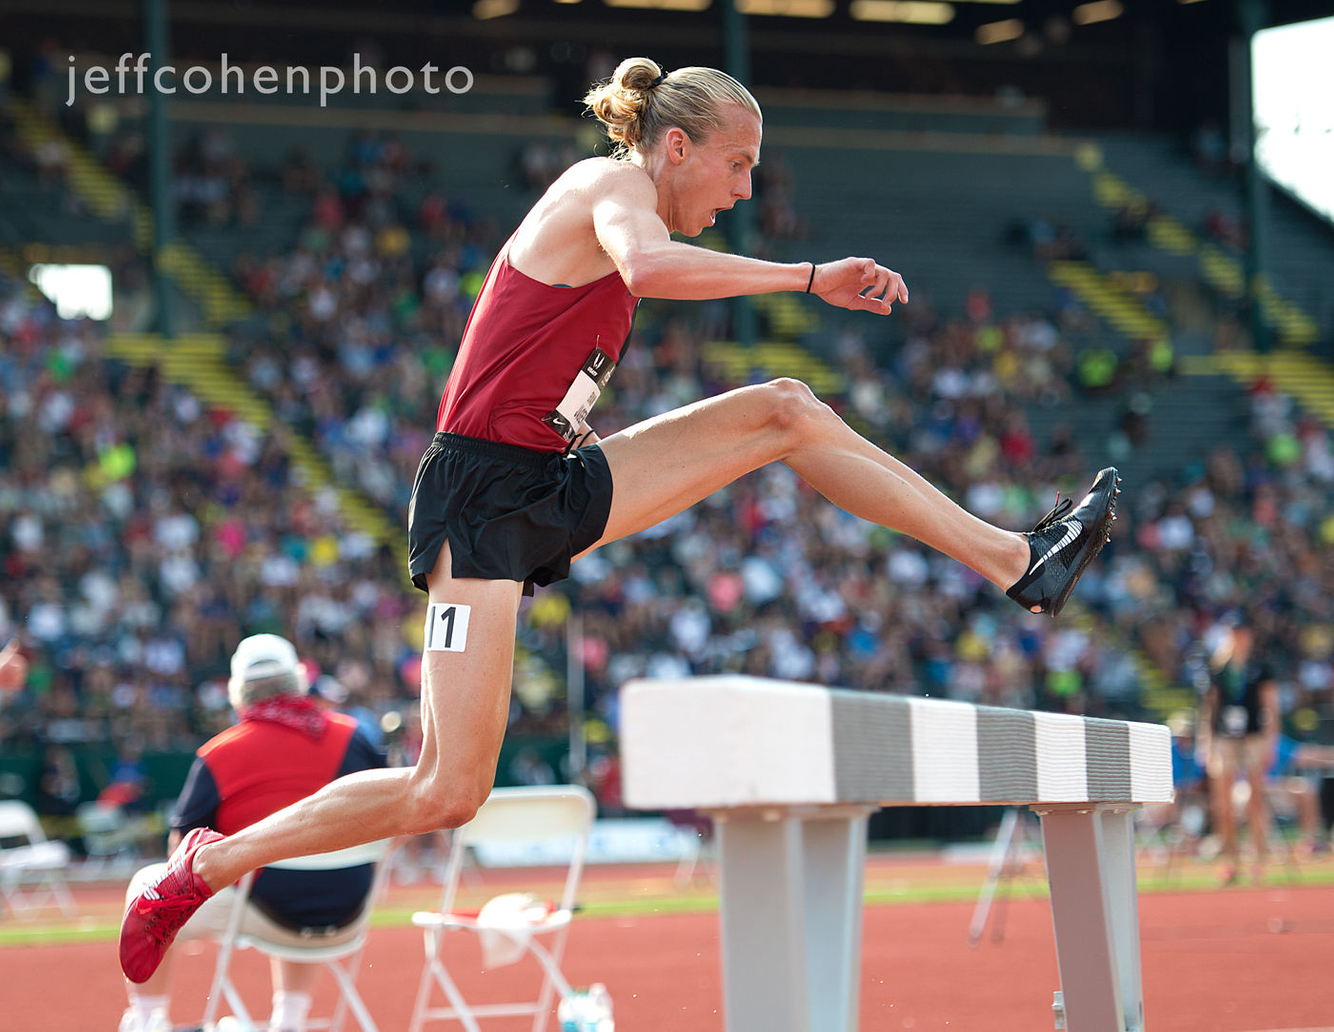 1r2015_usaoutdoors_jager_steeple_heat__jeff_cohen1173_web.jpg